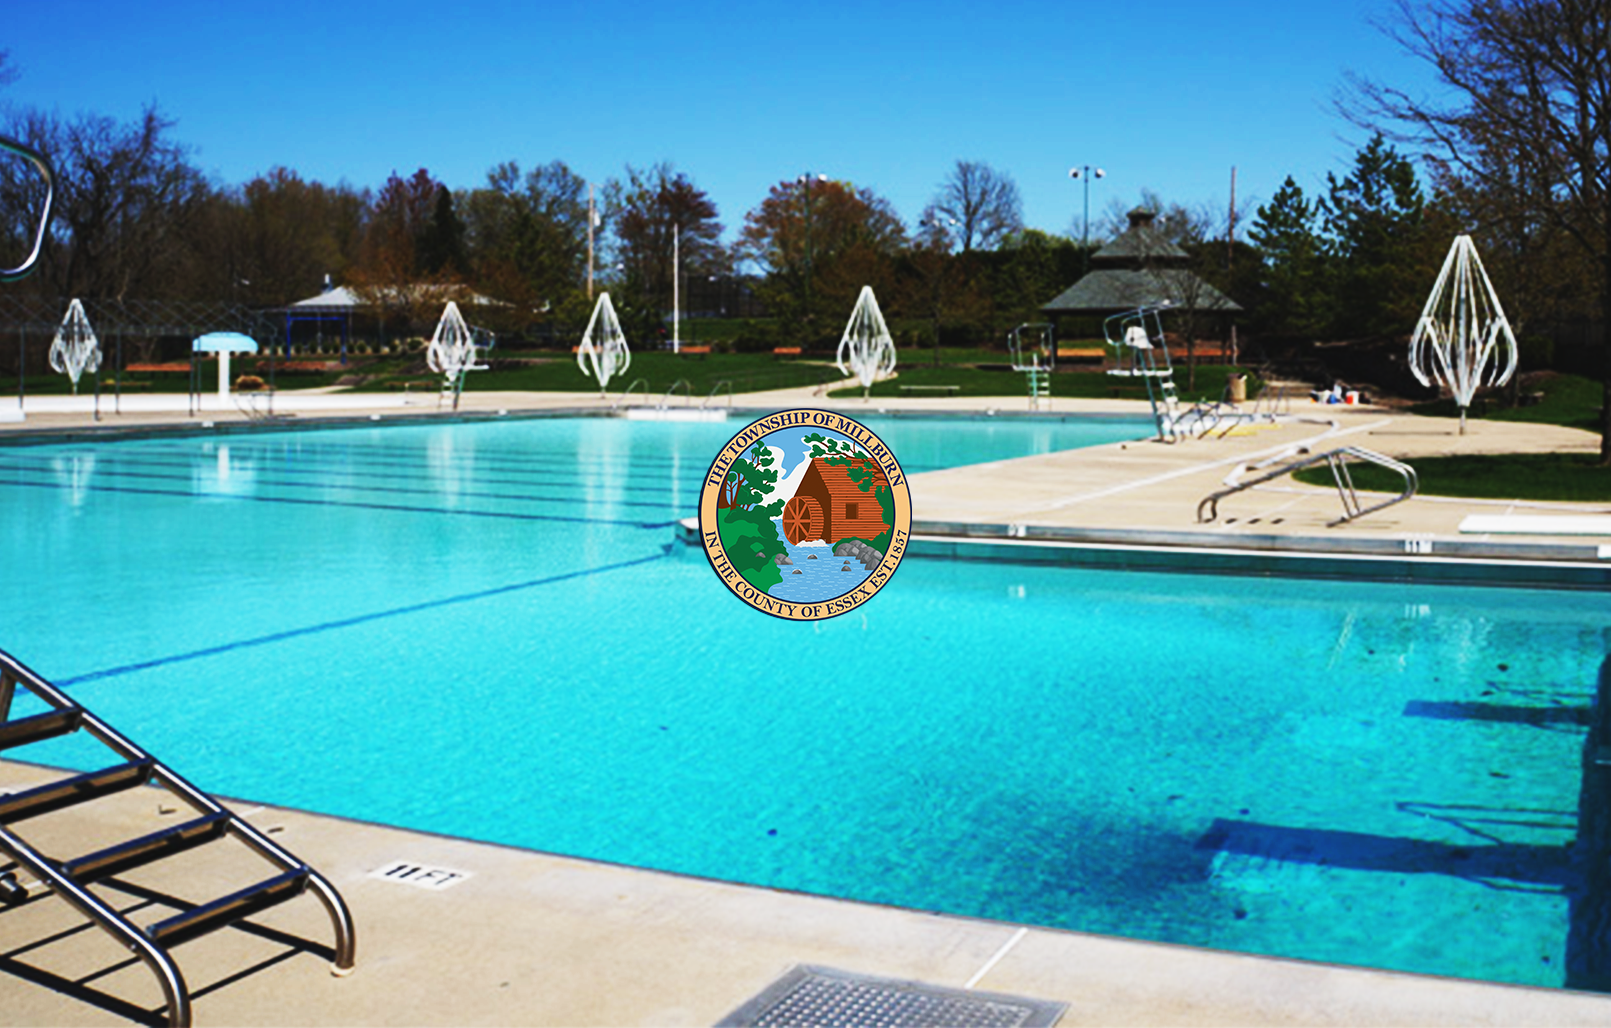 Photograph of Millburn Town Pool with Township of Millburn Seal in center of image